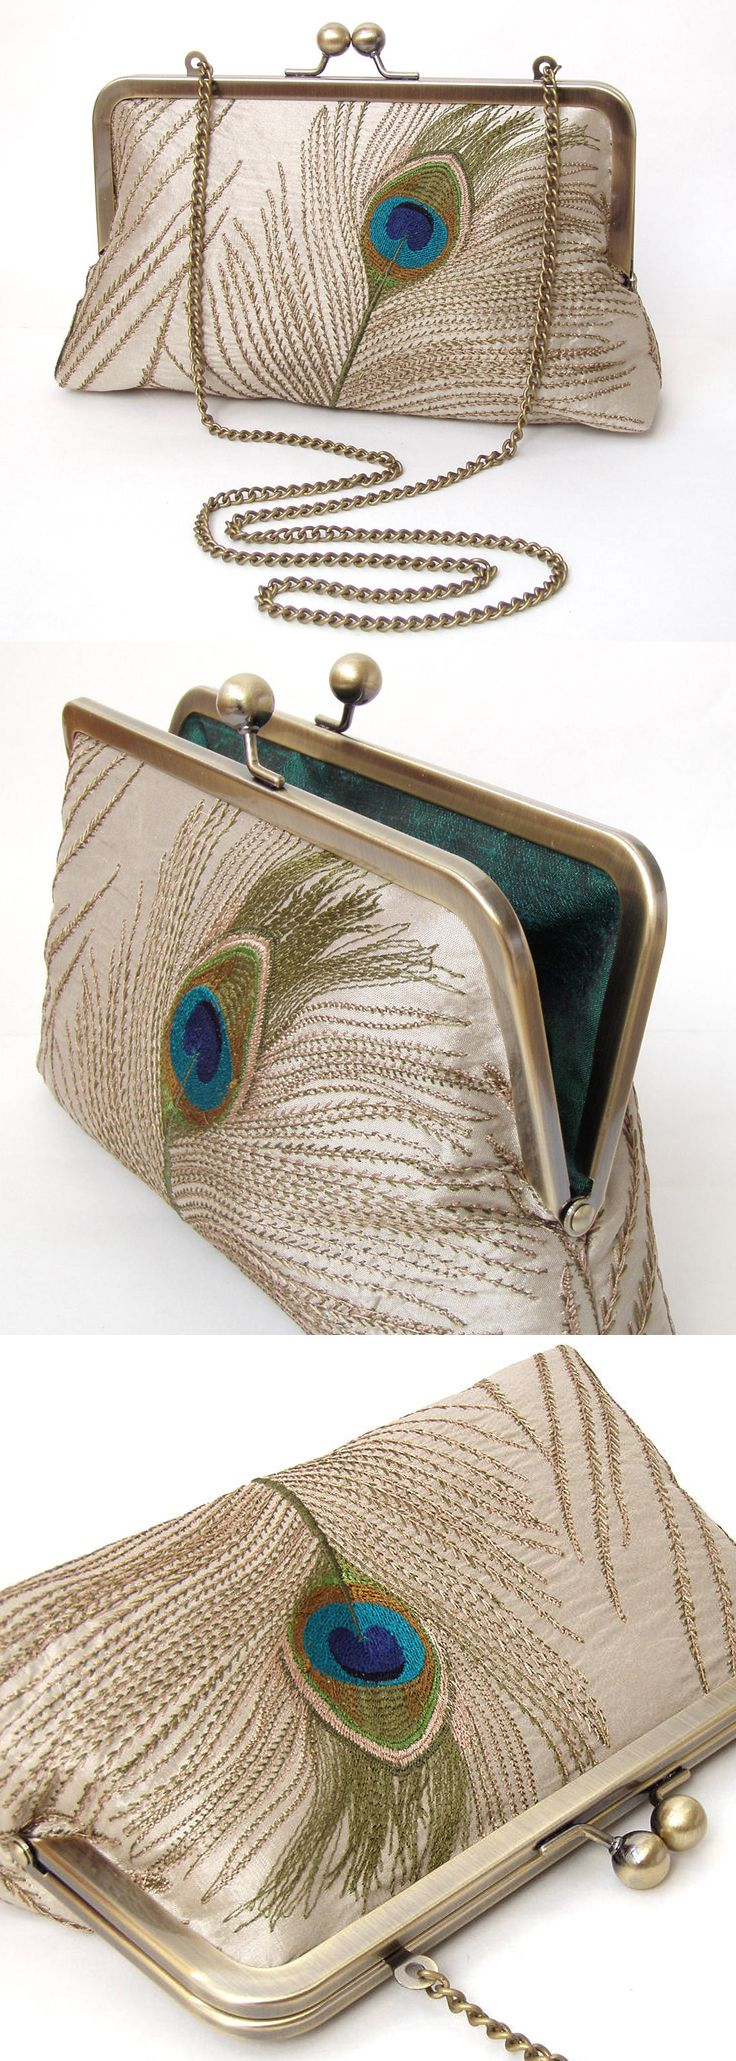 Peacock silk clutch bag £59.00. Taupe silk, with blue, green, gold and teal embroidery, lined with emerald green dupion. Perfect for a romantic peacock wedding, this clutch bag can also work fab for the mother of the bride, or other wedding guest at a winter or summer wedding, or vintage theme for a 1920s Gatby Christmas party. #weddings #peacock #christmasparty #motherofthebride #bridal #weddings #vintagetheme #affiliatelink #bags